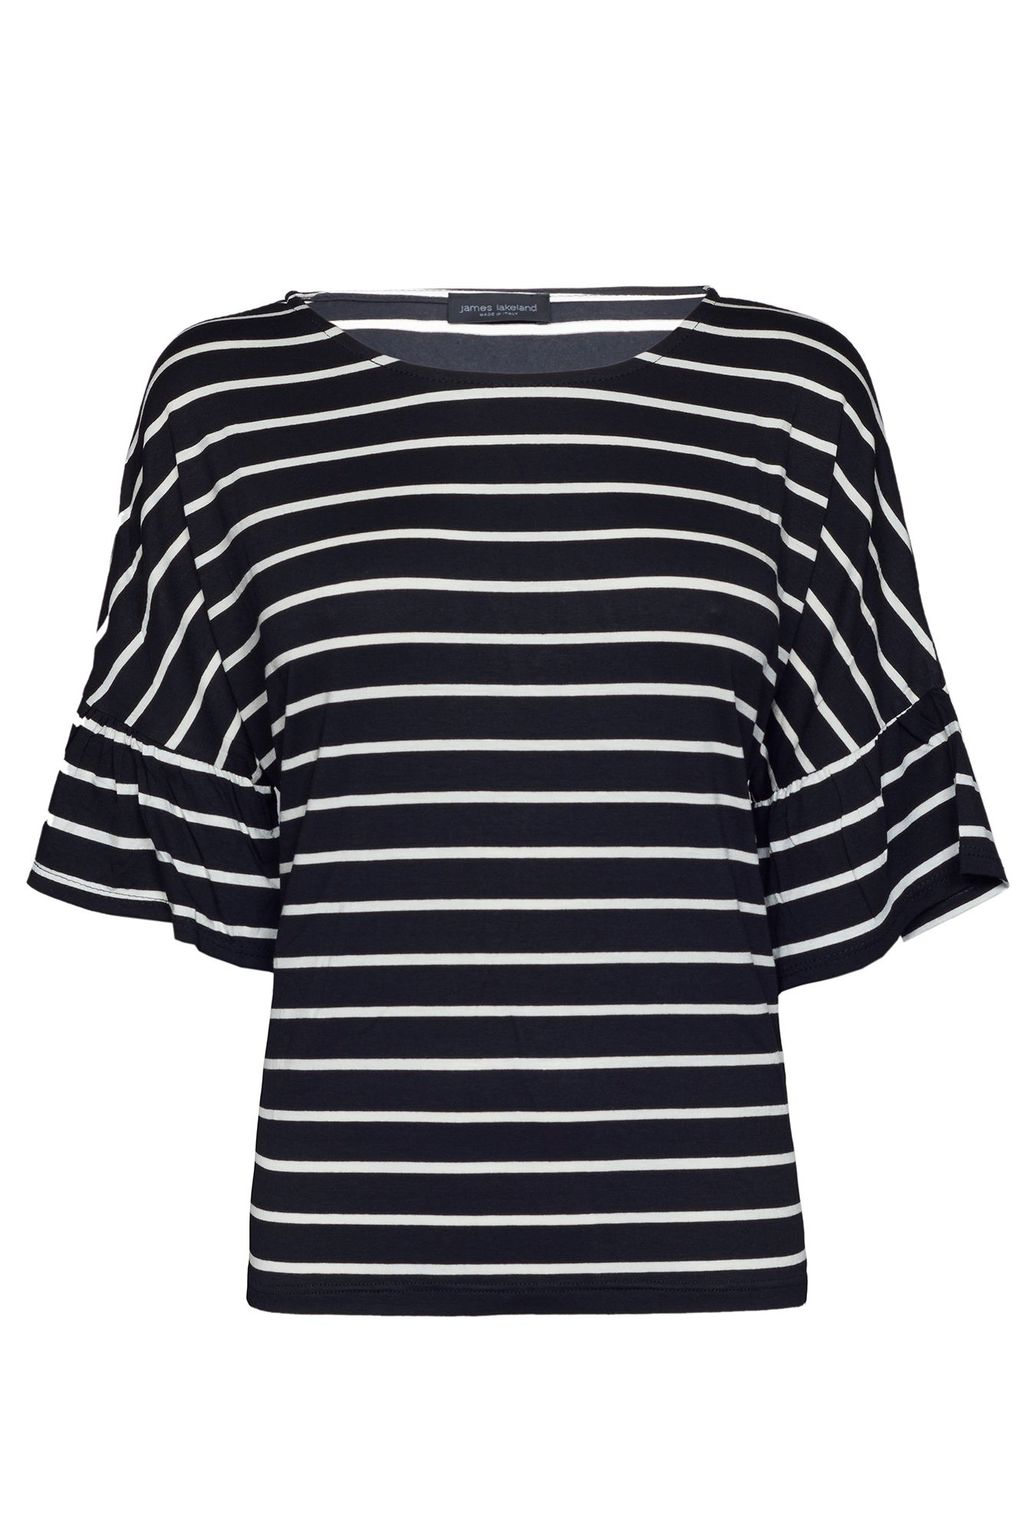 Wide Sleeve Stripe Top, Black/White - pattern: horizontal stripes; secondary colour: white; predominant colour: black; occasions: casual; length: standard; style: top; fibres: viscose/rayon - 100%; fit: body skimming; neckline: crew; sleeve length: 3/4 length; sleeve style: standard; pattern type: fabric; texture group: jersey - stretchy/drapey; season: a/w 2015; wardrobe: basic